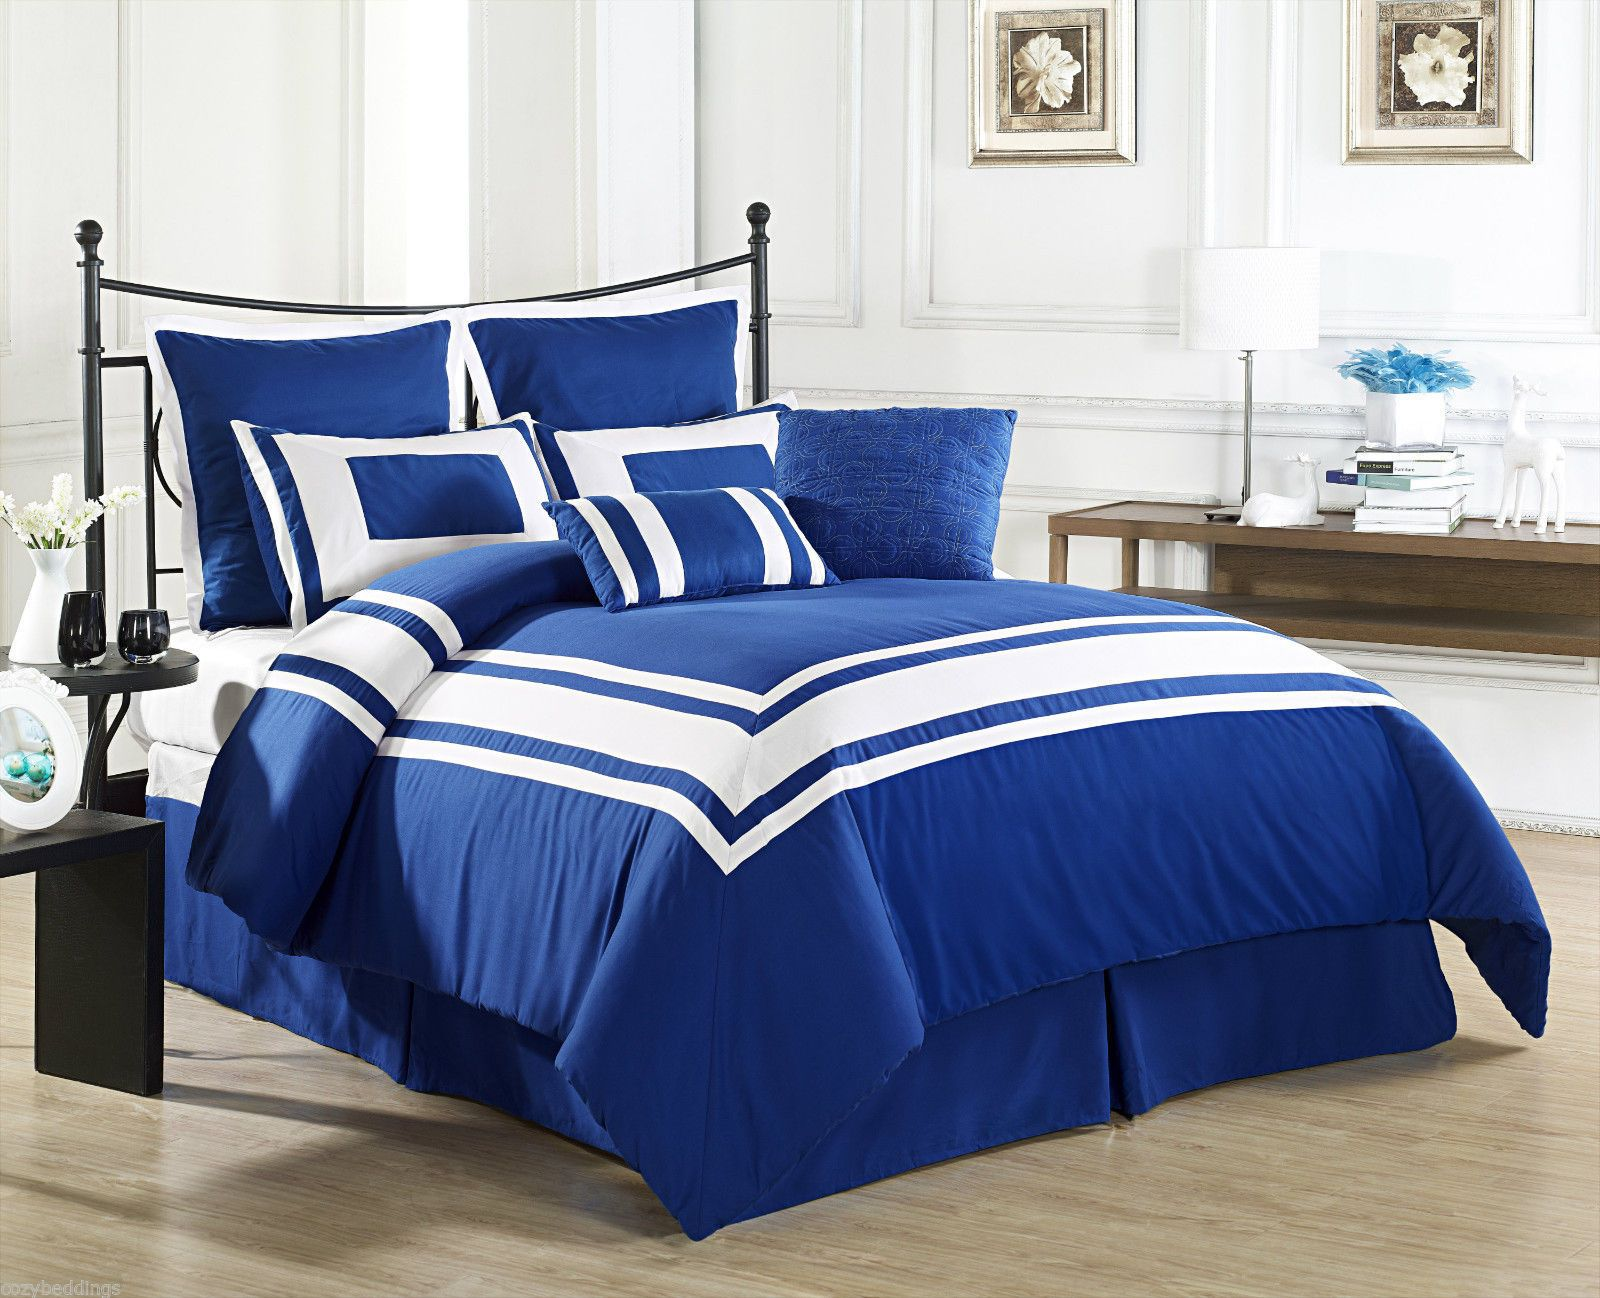 Royal blue bedding queen - Lux Decor Royal Blue Queen Size Bed 8 Piece Comforter Set White Stripe Bedding